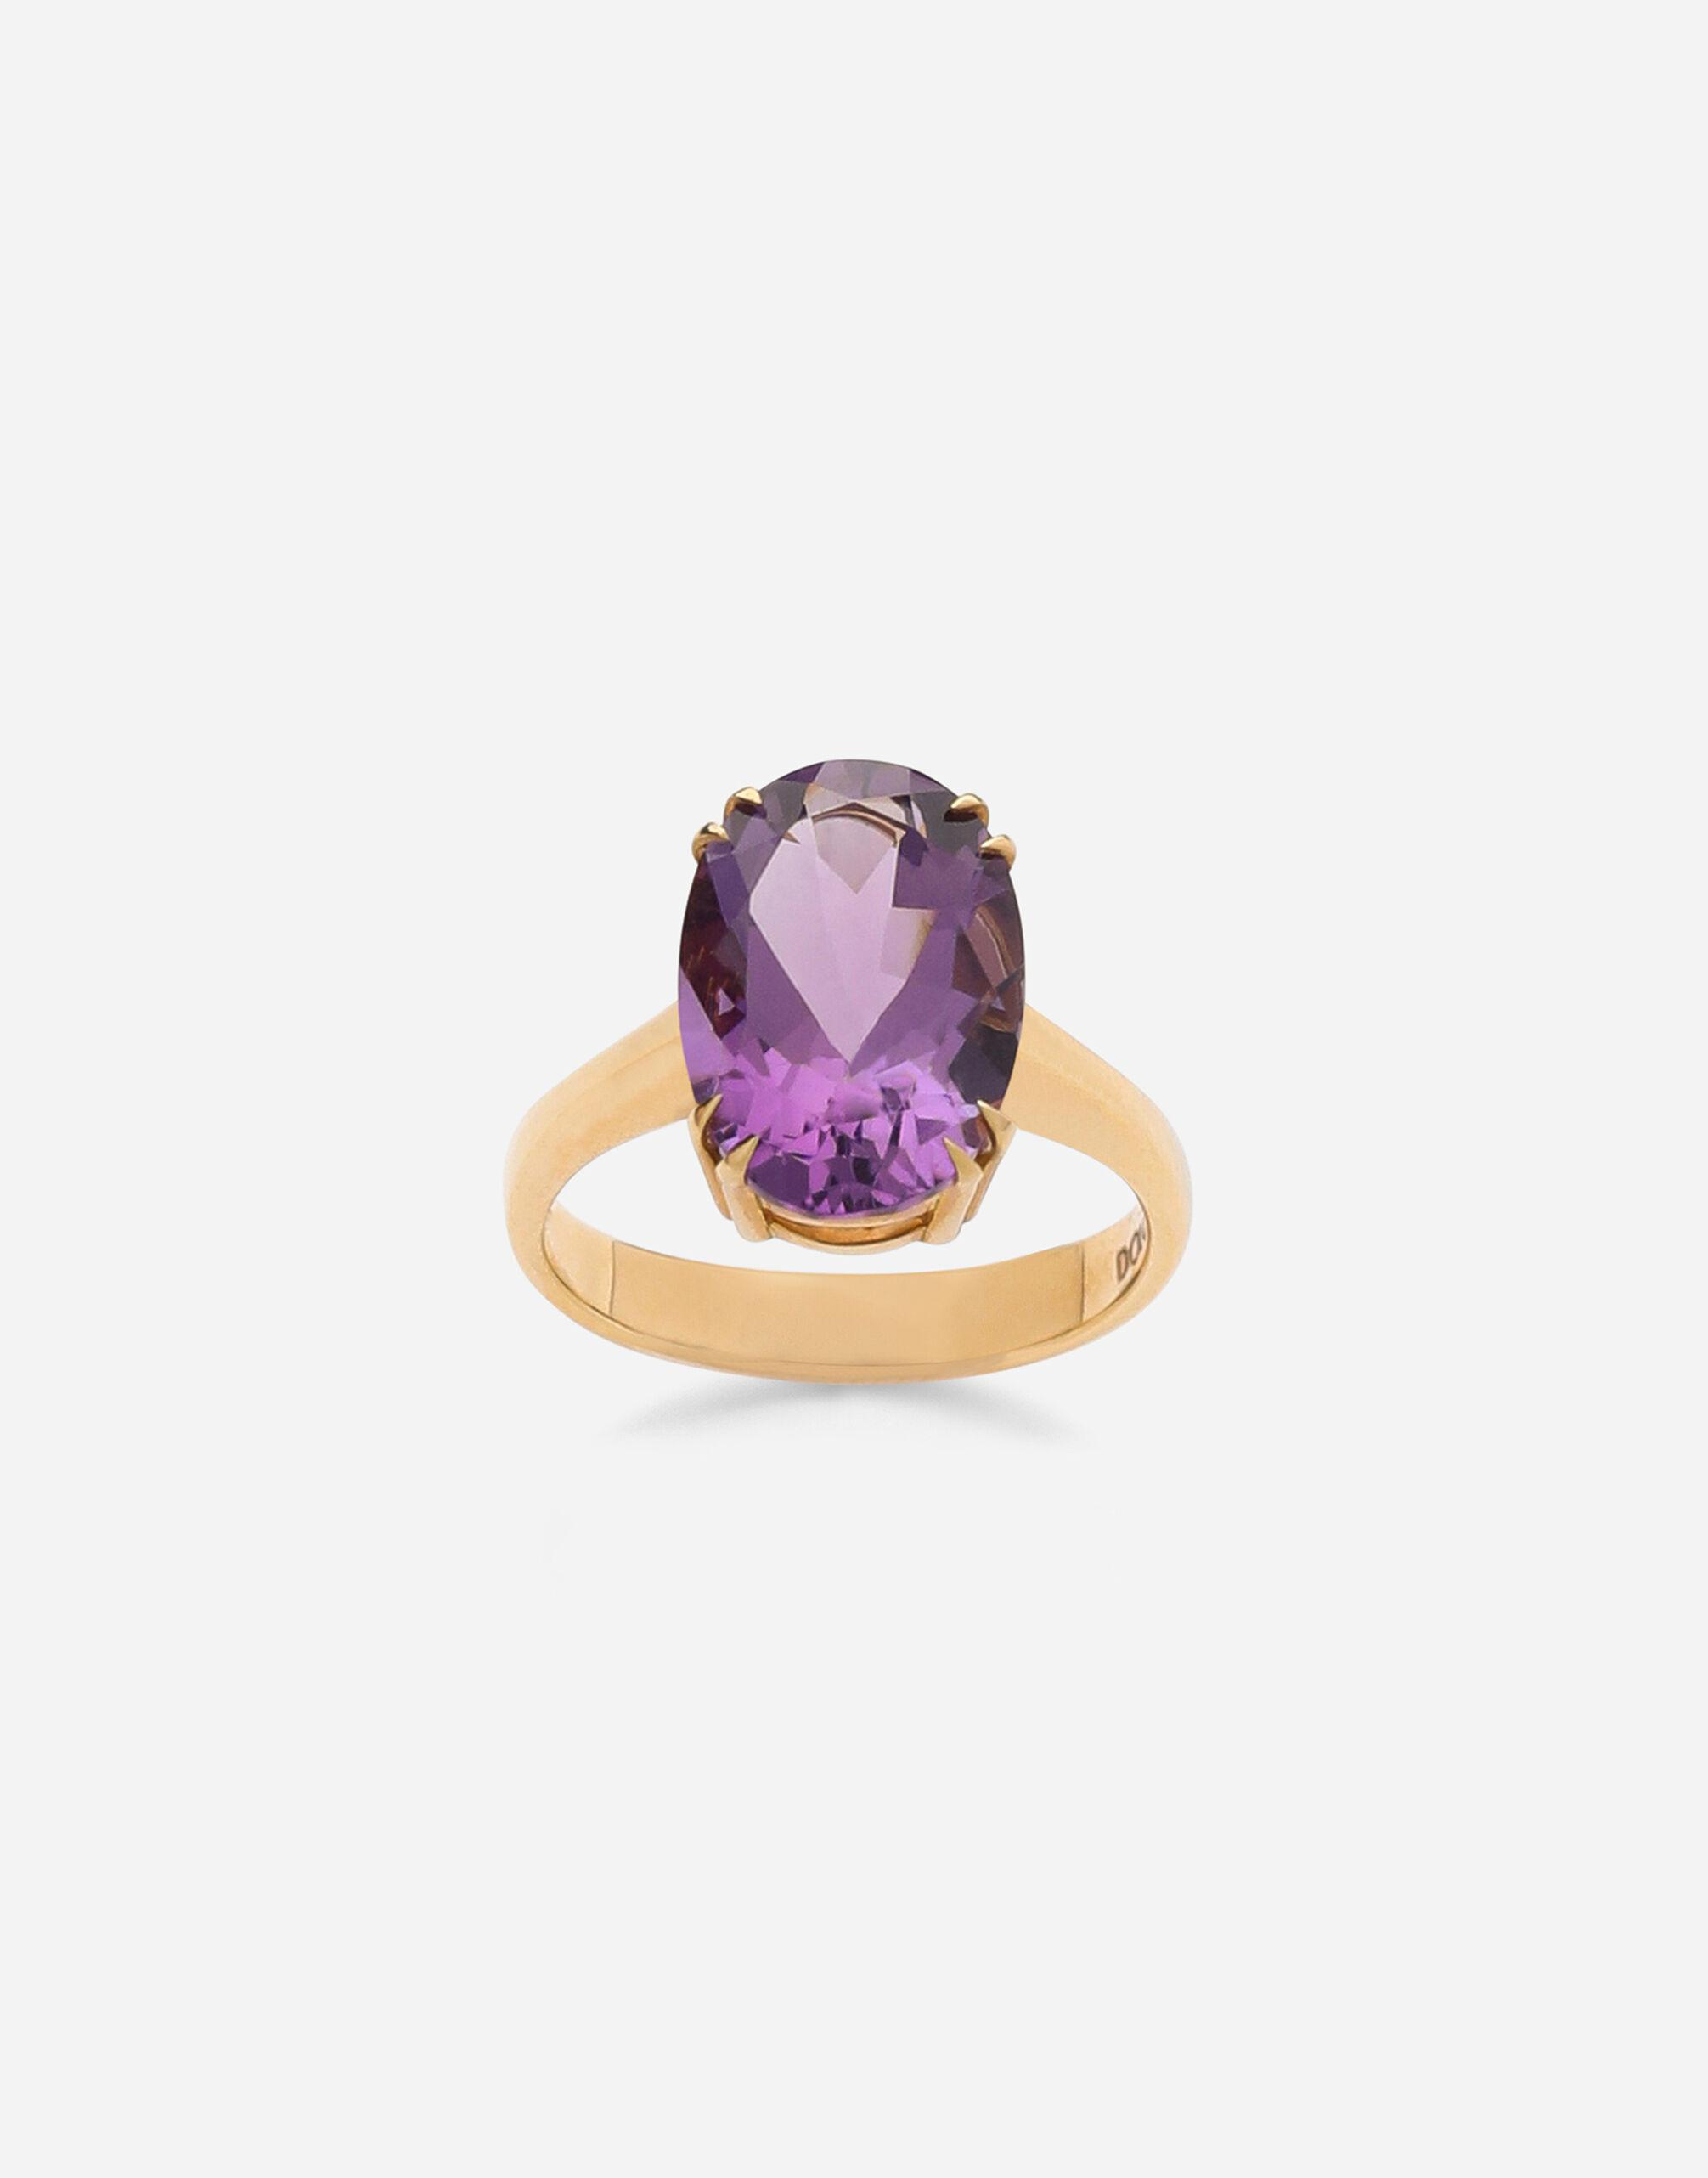 Anna ring in yellow 18kt gold with amethyst